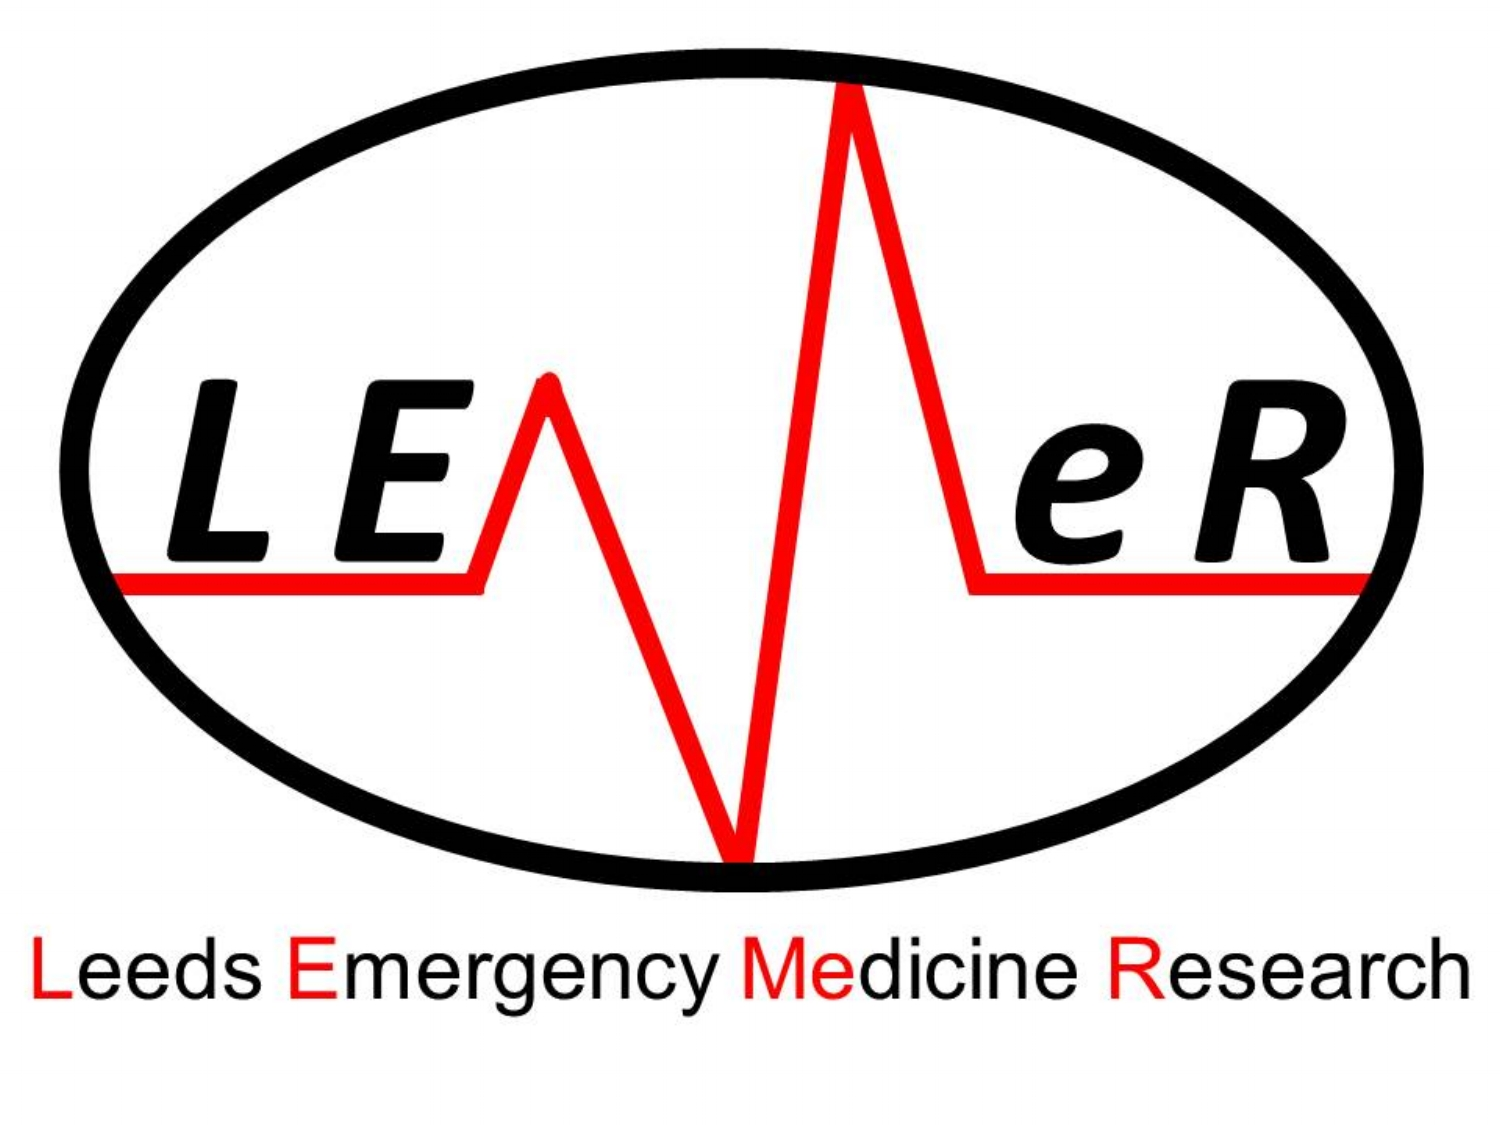 LEMeR - Leeds Emergency Medicine Research